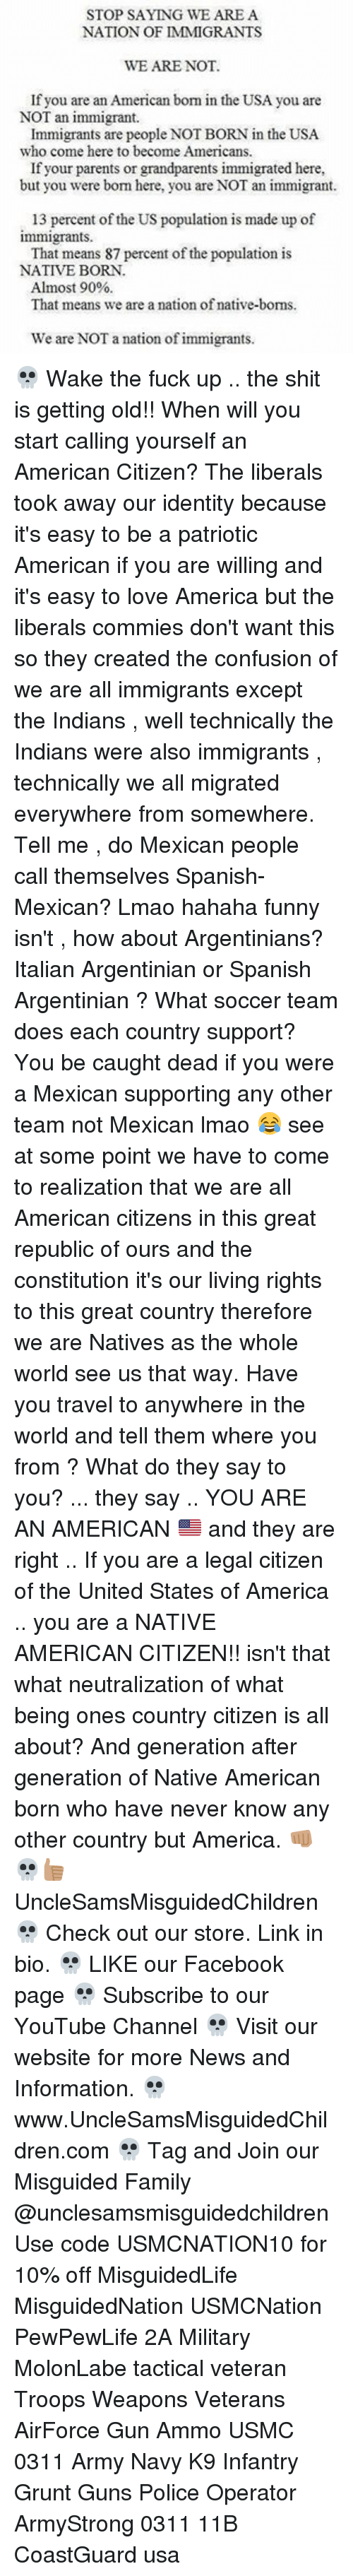 Memes, Native American, and Argentinian: STOP SAYING WE ARE A  NATION OF IMMIGRANTS  WE ARE NOT.  If you are an American born in the USA you are  NOT an immigrant.  Immigrants are people NOTBORN in the USA.  who come here to become Americans.  If your parents or grandparents immigrated here,  but you were bom here, you are NOT an immigrant.  13 percent of the US population is made up of  immigrants.  That means 87 percent of the population is  NATIVE BORN.  Almost 90%  That means we are a nation of native-boms.  We are NOT a nation of immigrants. 💀 Wake the fuck up .. the shit is getting old!! When will you start calling yourself an American Citizen? The liberals took away our identity because it's easy to be a patriotic American if you are willing and it's easy to love America but the liberals commies don't want this so they created the confusion of we are all immigrants except the Indians , well technically the Indians were also immigrants , technically we all migrated everywhere from somewhere. Tell me , do Mexican people call themselves Spanish-Mexican? Lmao hahaha funny isn't , how about Argentinians? Italian Argentinian or Spanish Argentinian ? What soccer team does each country support? You be caught dead if you were a Mexican supporting any other team not Mexican lmao 😂 see at some point we have to come to realization that we are all American citizens in this great republic of ours and the constitution it's our living rights to this great country therefore we are Natives as the whole world see us that way. Have you travel to anywhere in the world and tell them where you from ? What do they say to you? ... they say .. YOU ARE AN AMERICAN 🇺🇸 and they are right .. If you are a legal citizen of the United States of America .. you are a NATIVE AMERICAN CITIZEN!! isn't that what neutralization of what being ones country citizen is all about? And generation after generation of Native American born who have never know any other country but America. 👊🏽💀👍🏽 UncleSamsMisguidedChildren 💀 Check out our store. Link in bio. 💀 LIKE our Facebook page 💀 Subscribe to our YouTube Channel 💀 Visit our website for more News and Information. 💀 www.UncleSamsMisguidedChildren.com 💀 Tag and Join our Misguided Family @unclesamsmisguidedchildren Use code USMCNATION10 for 10% off MisguidedLife MisguidedNation USMCNation PewPewLife 2A Military MolonLabe tactical veteran Troops Weapons Veterans AirForce Gun Ammo USMC 0311 Army Navy K9 Infantry Grunt Guns Police Operator ArmyStrong 0311 11B CoastGuard usa